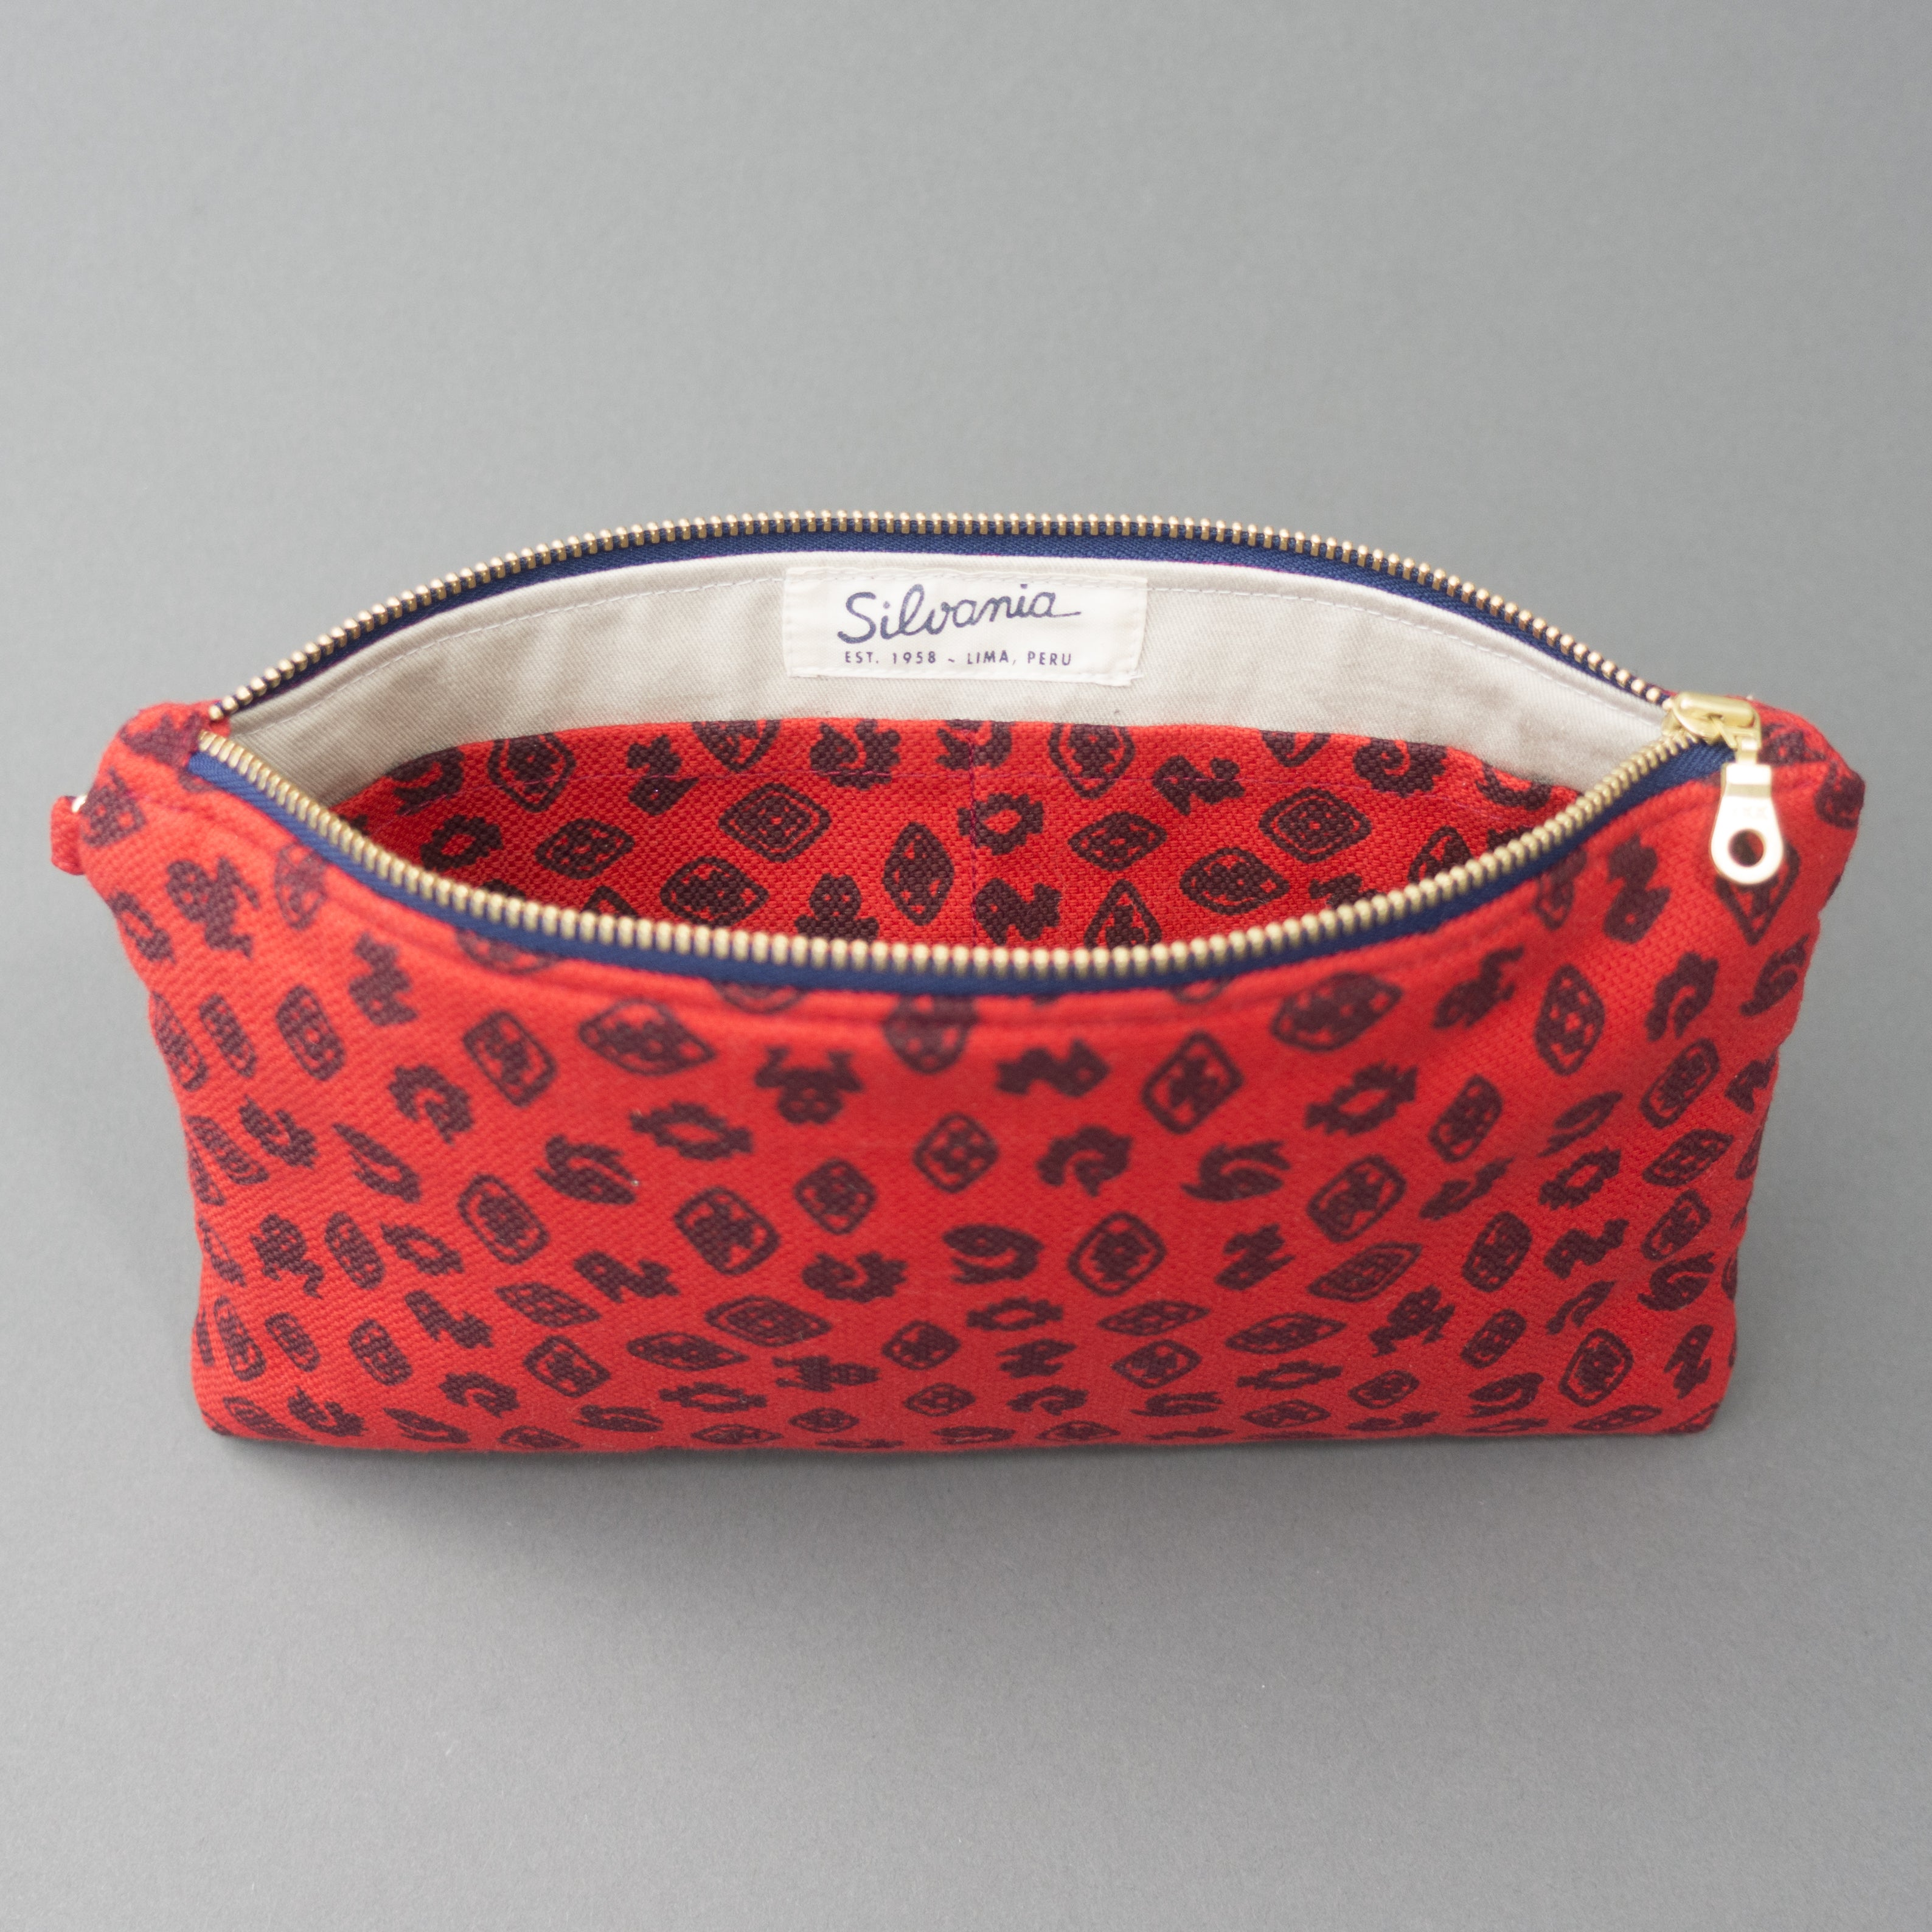 Wristlet Clutch Purse - Fauna de la Costa Print Red